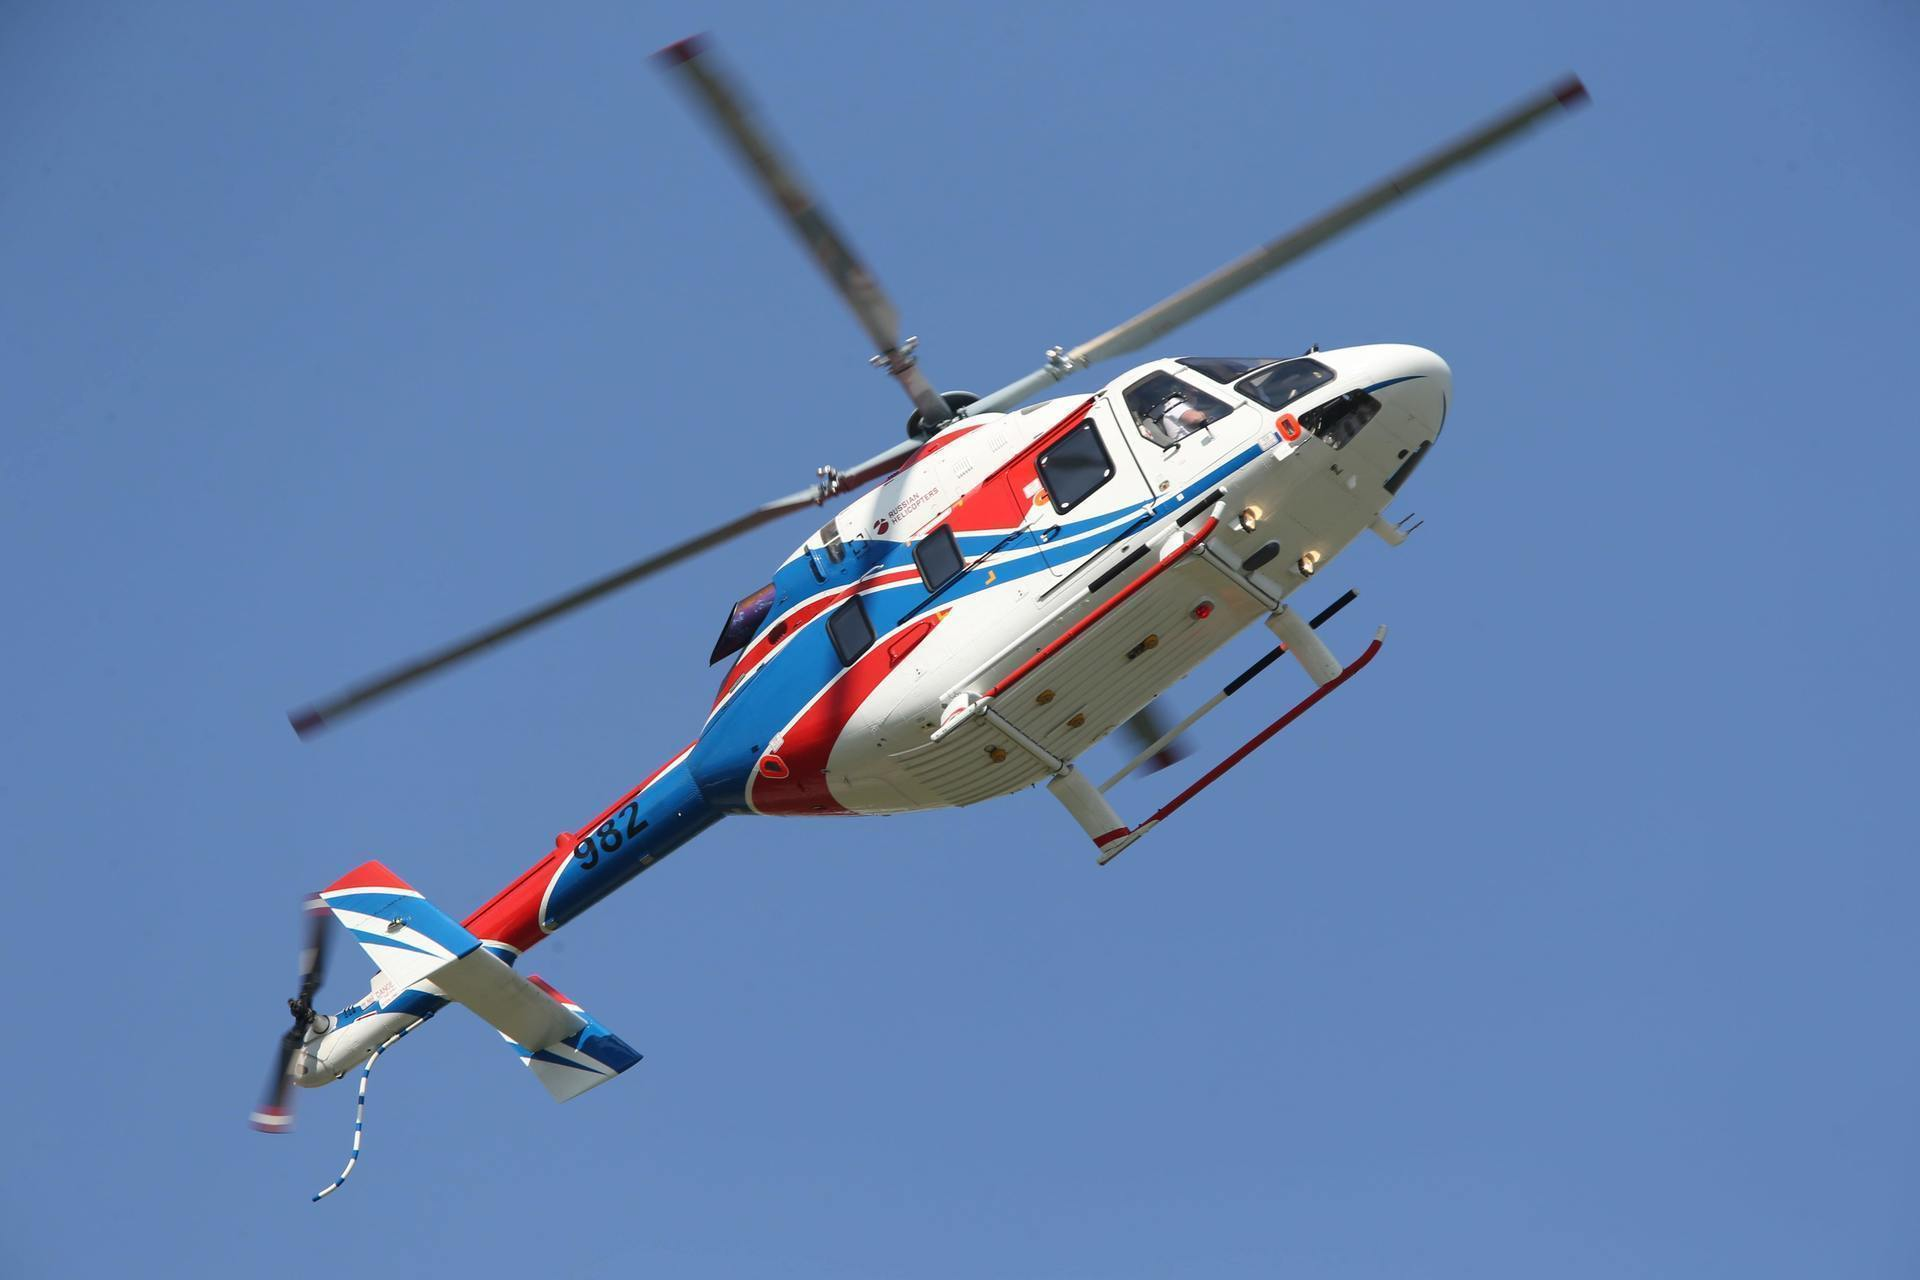 The Helicopter Service Company obtained anauthorization for servicing Ansat helicopter engines in Russia and the CIS